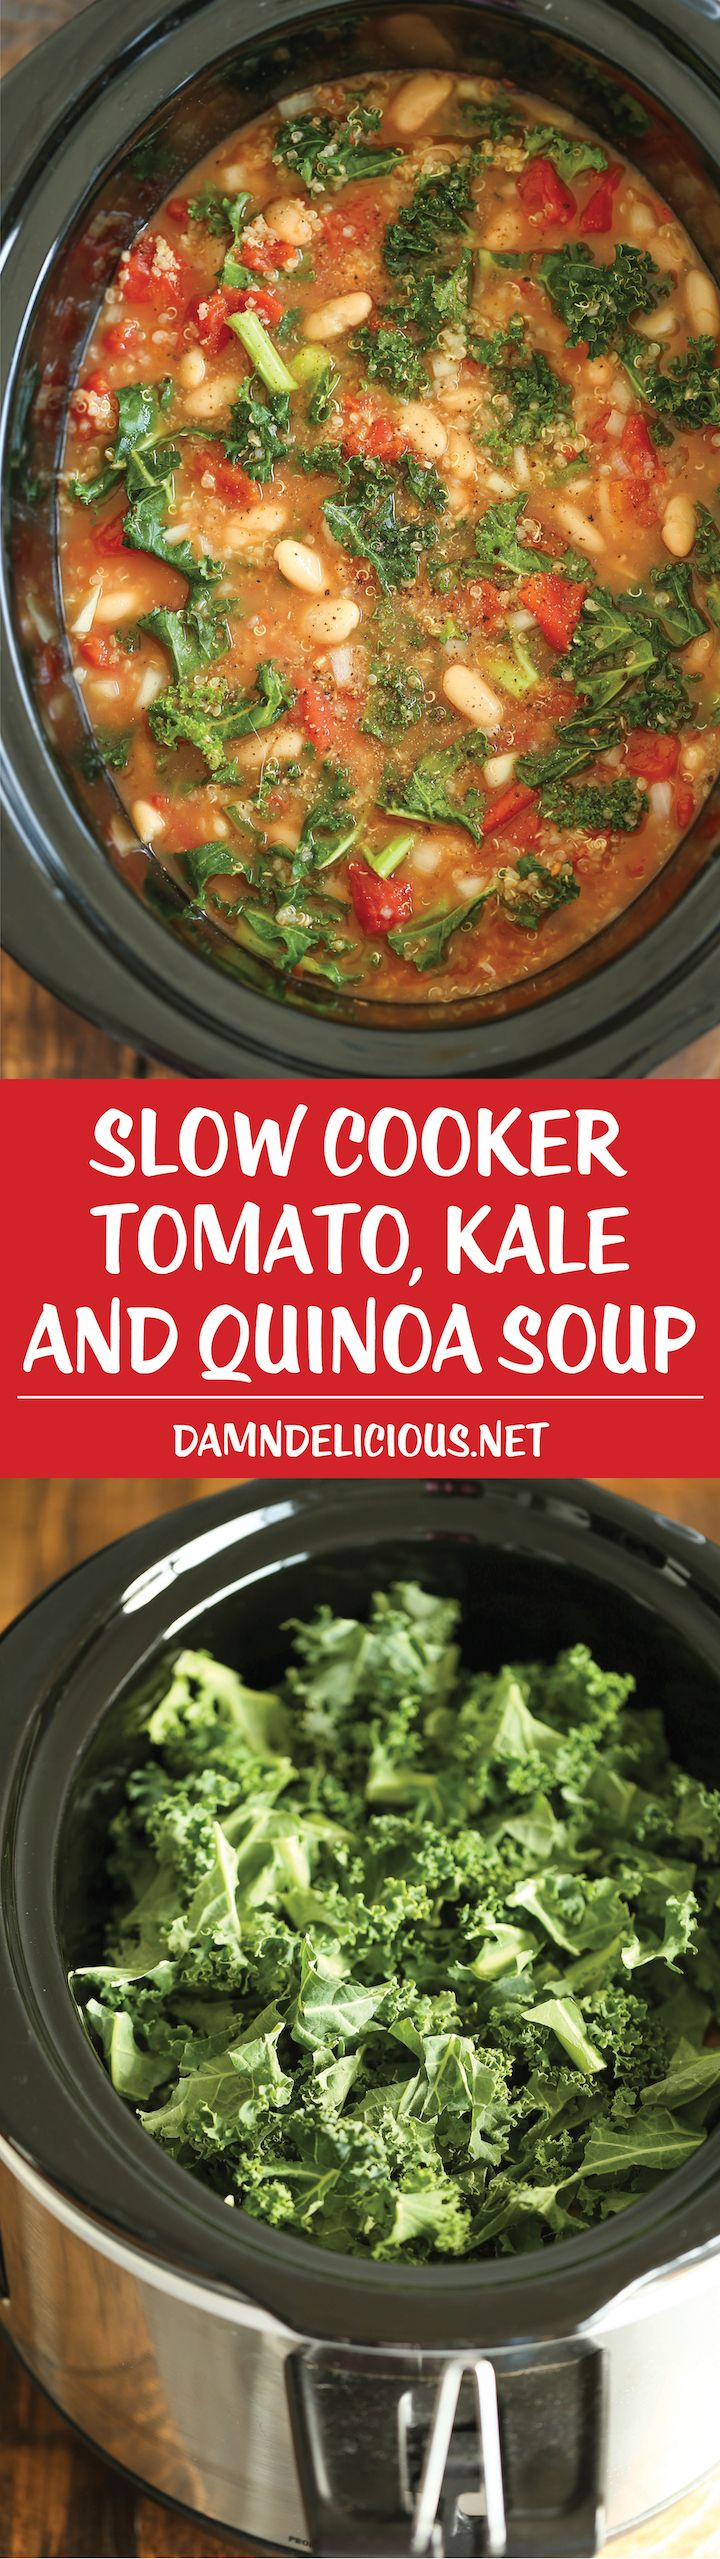 Slow Cooker Tomato, Kale and Quinoa Soup - Comforting, nourishing and healthy made in the crockpot. Even the quinoa gets cooked right in!